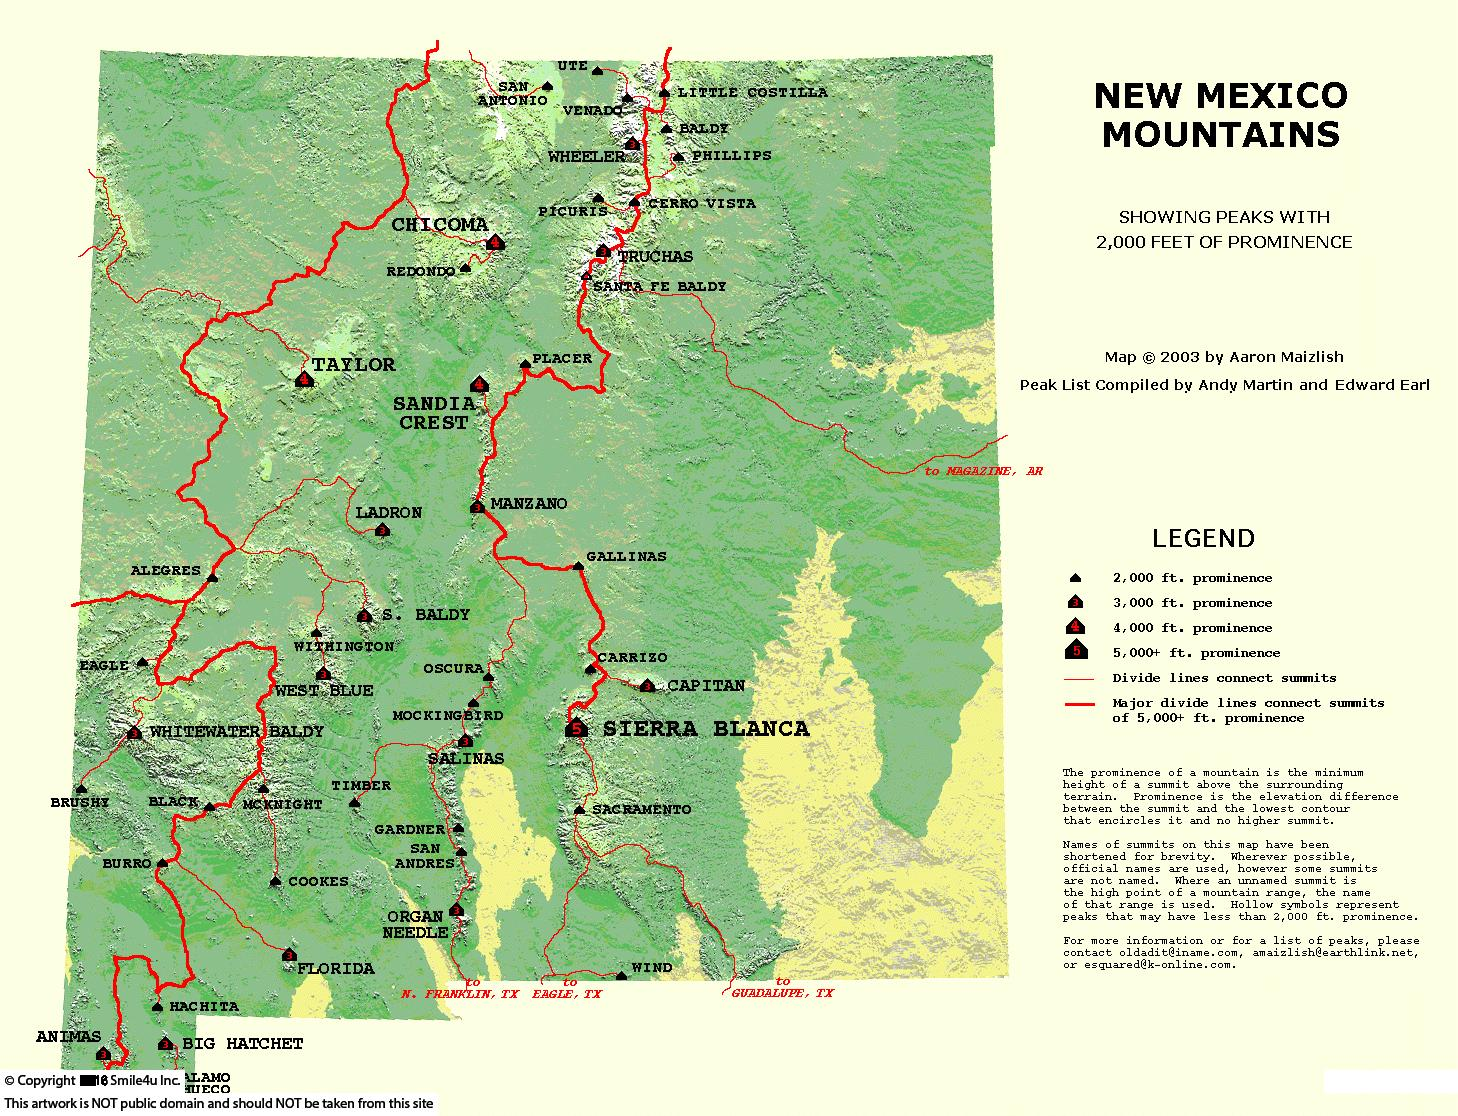 485031_watermarked_newmexicosummits.png